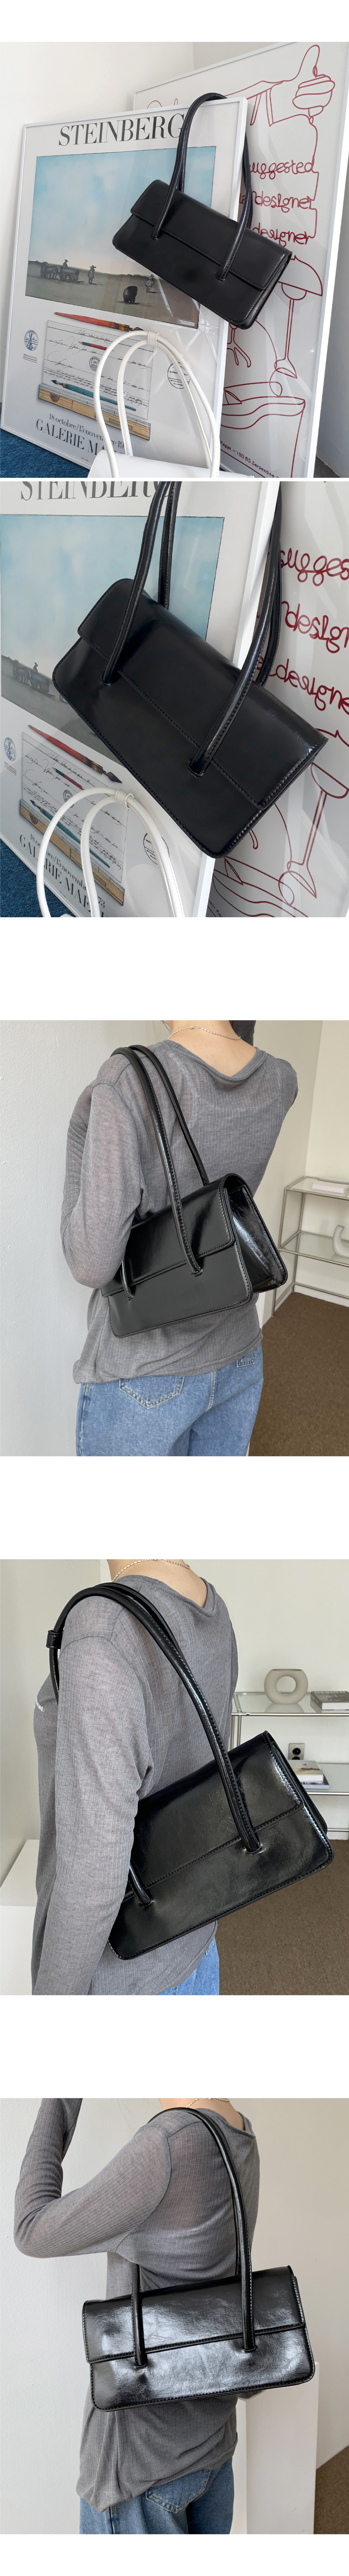 With Shiny Square Leather Shoulder Bag